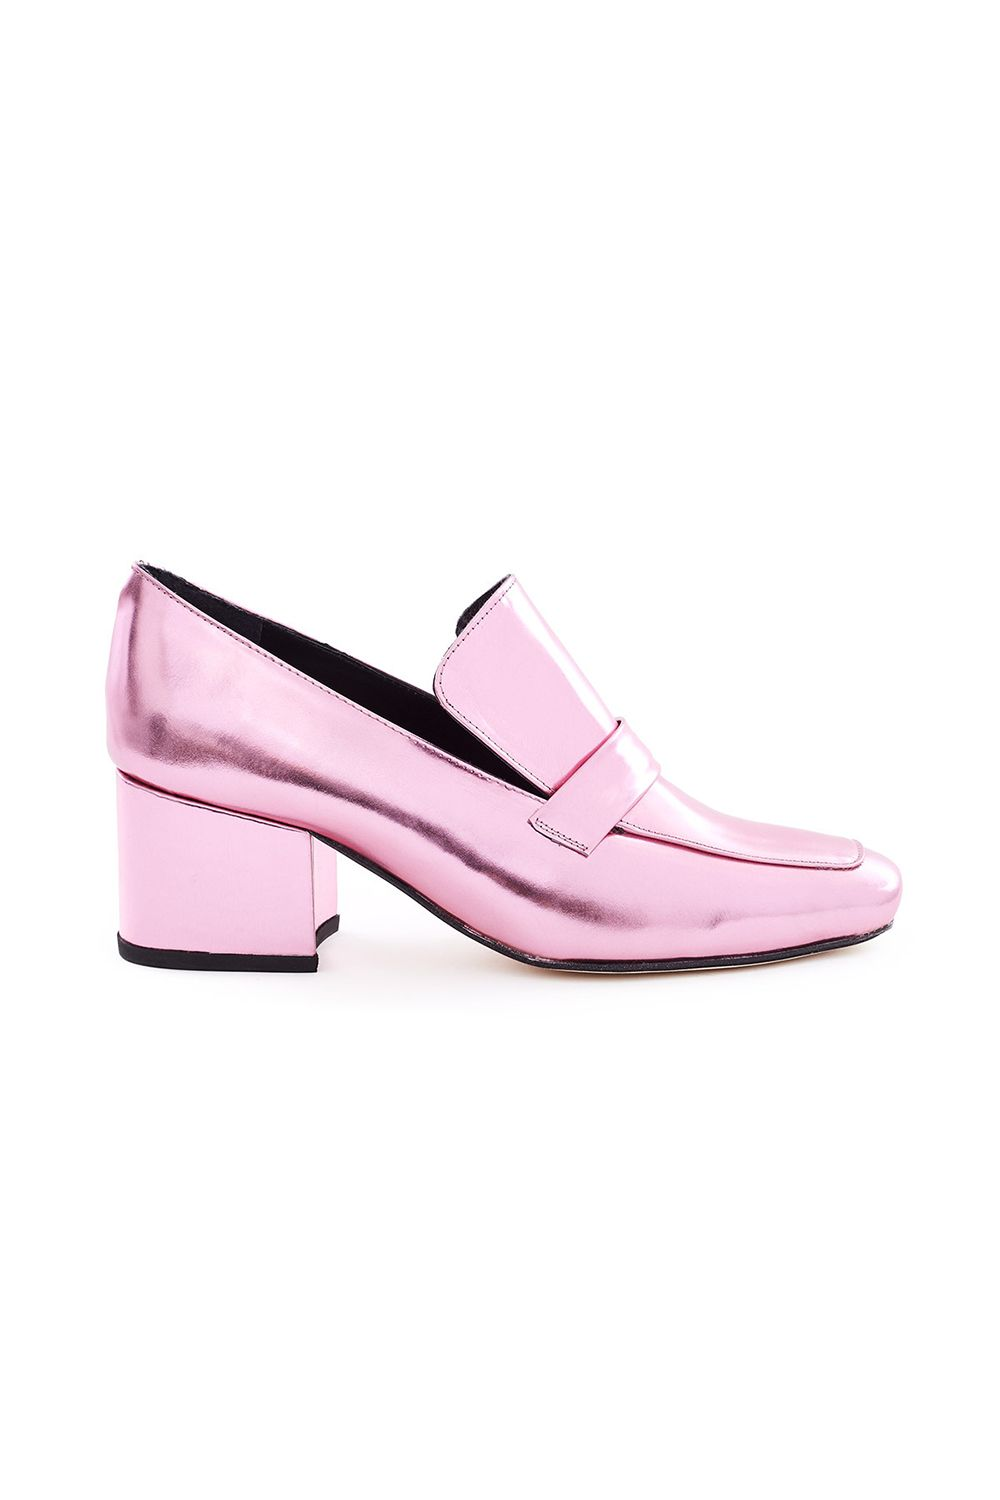 "<p>Admit it: You were going to buy these pink foil loafers anyway. </p><p>$485, <a href=""https://www.openingceremony.com/womens/dorateymur/heeled-loafers-ST97471.html"" target=""_blank"" data-tracking-id=""recirc-text-link"">openingceremony.com</a>.</p>"